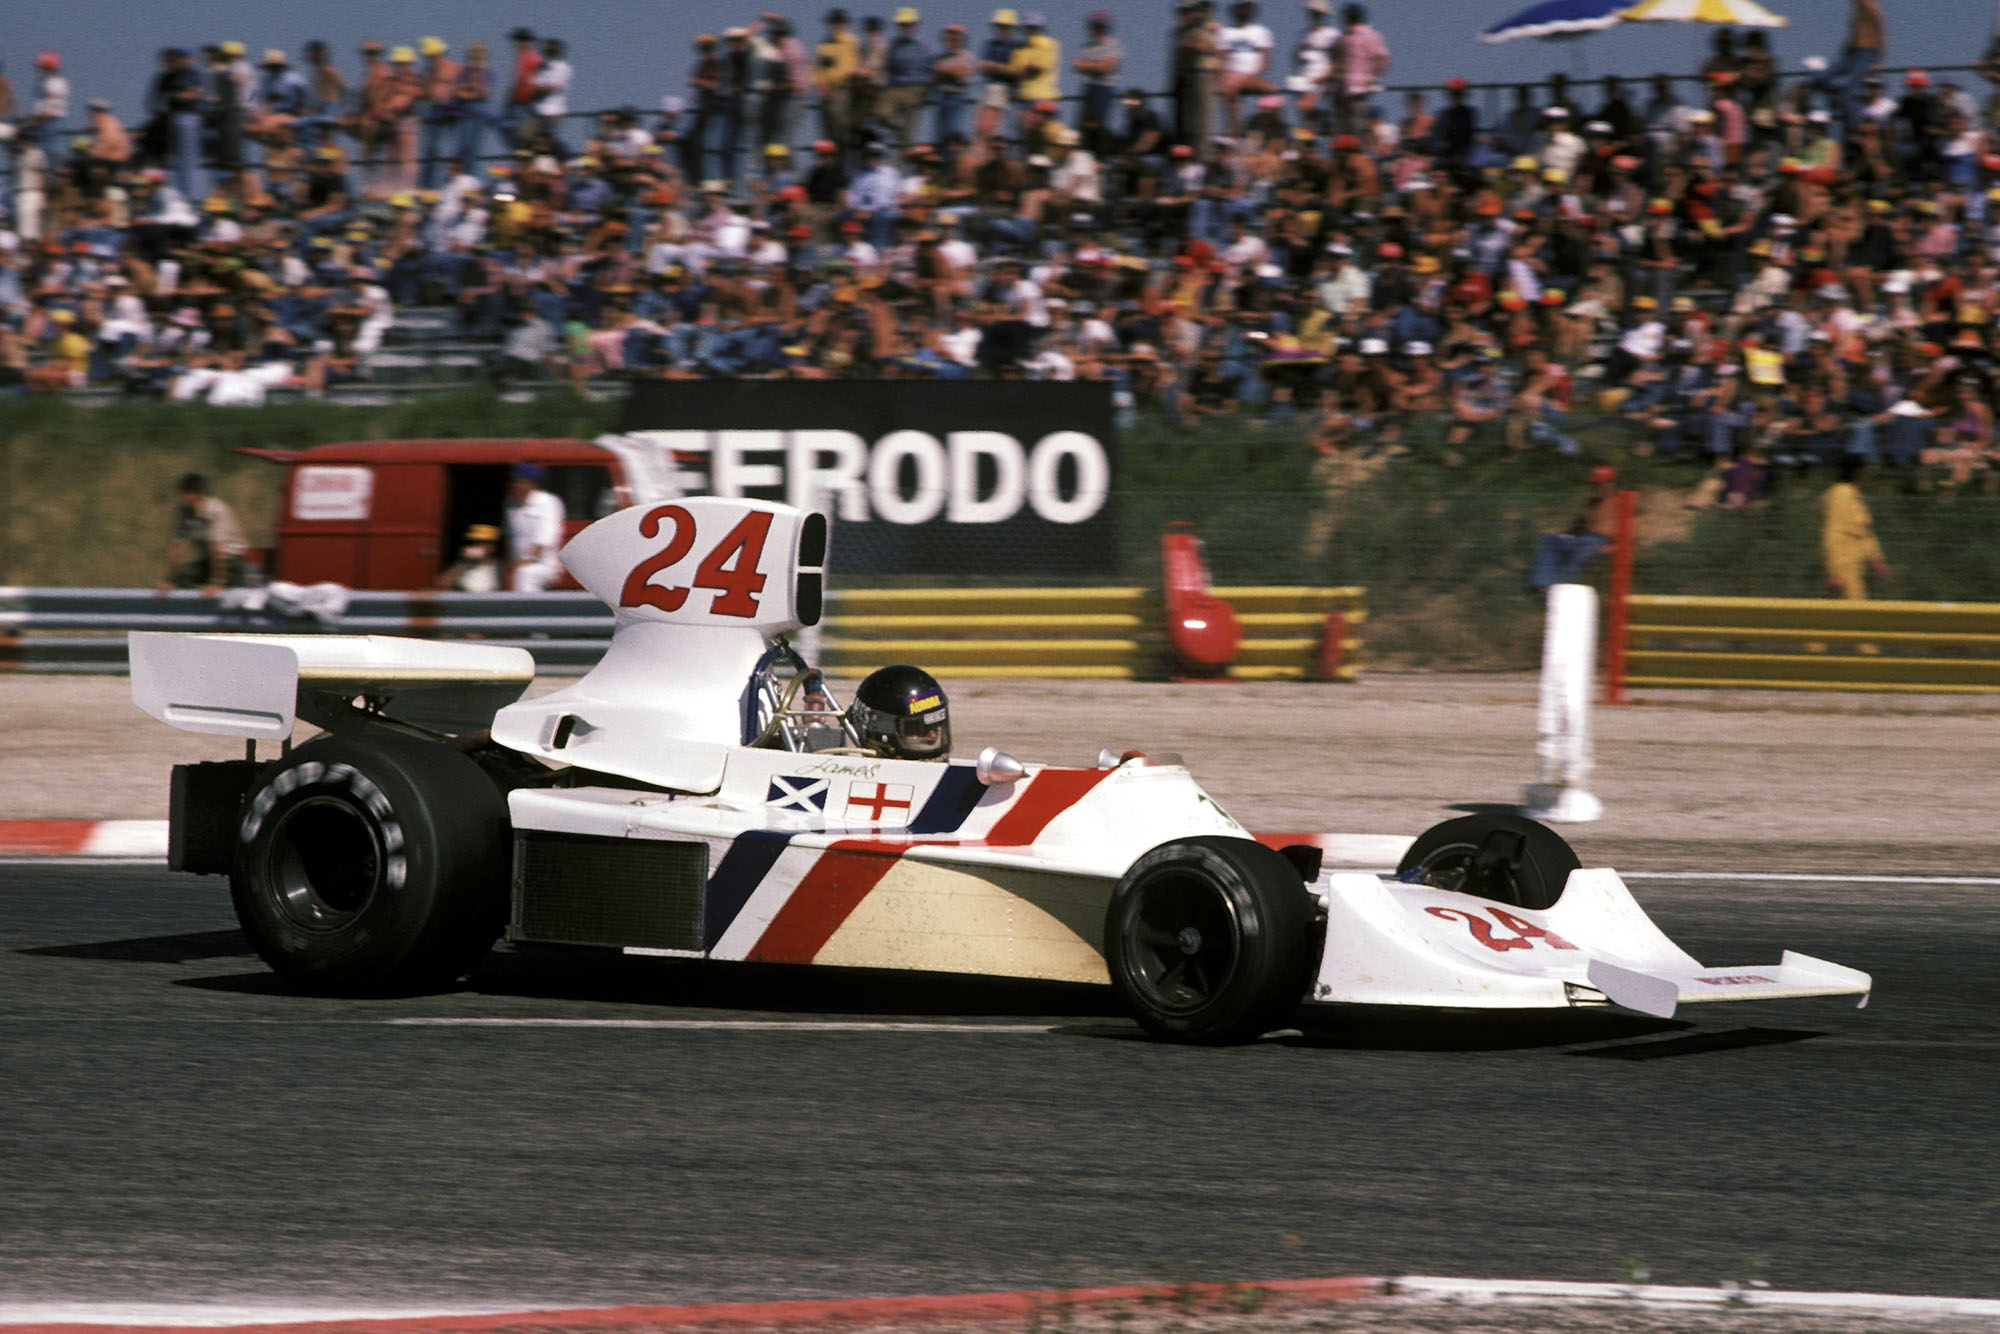 James Hunt racing his Hesketh at the 1975 French Grand Prix, Paul Ricard.